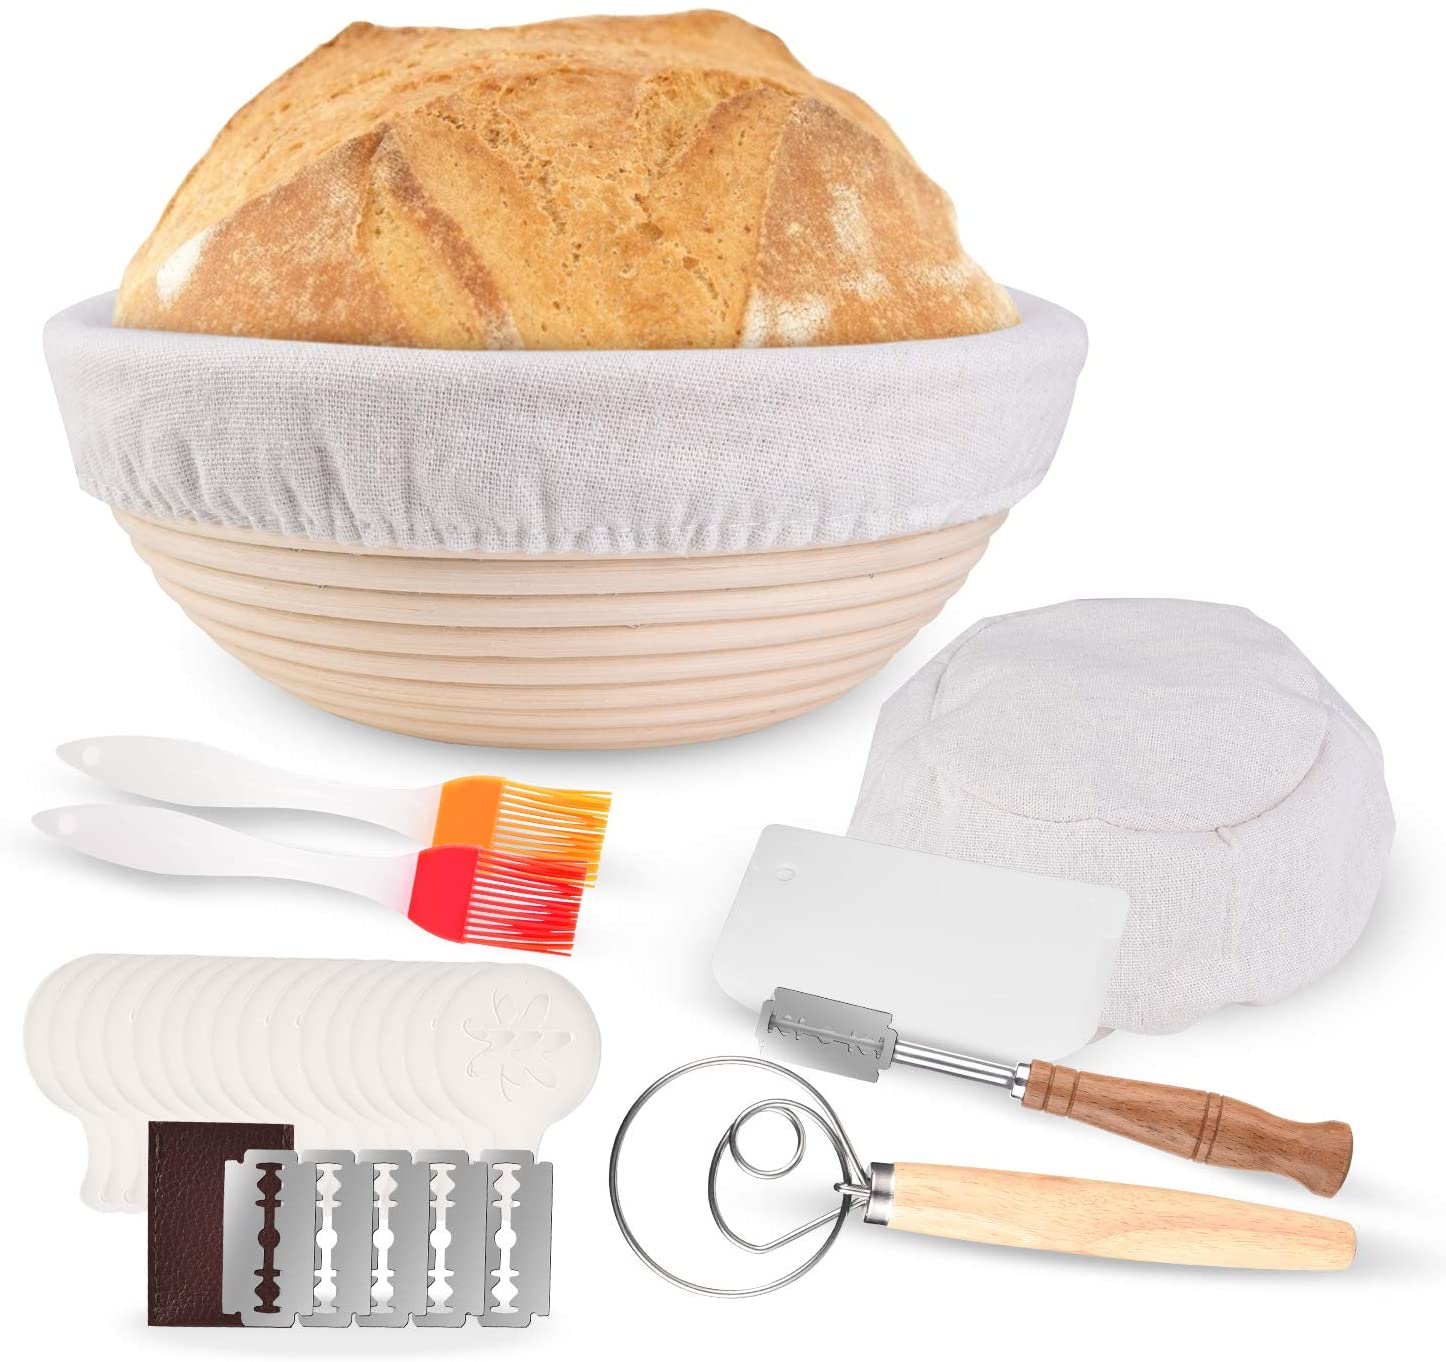 Banneton Proofing Basket, 9 Inch Bread Proofing Basket Kit with Bread Lame,Dough Scraper, Scoring Lame,Dough Whisk 28PCS Baking Tool for Professional & Home Bakers